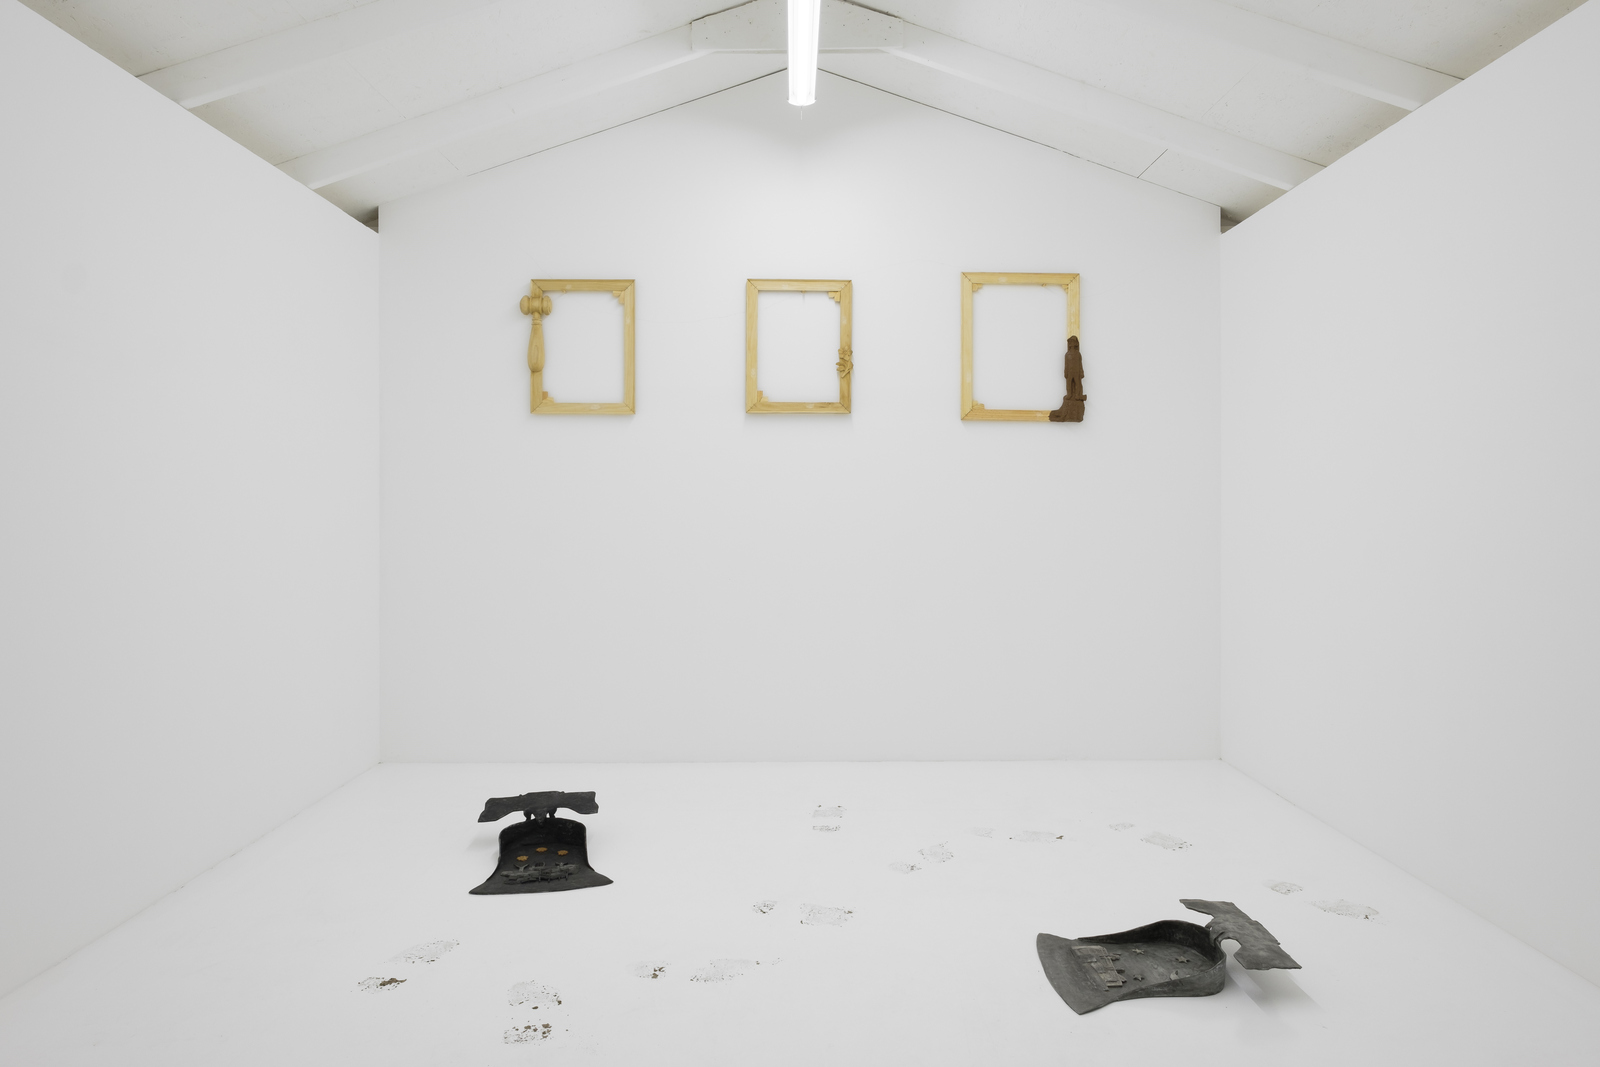 michael assiff and dennis witkin at hotel art pavilion